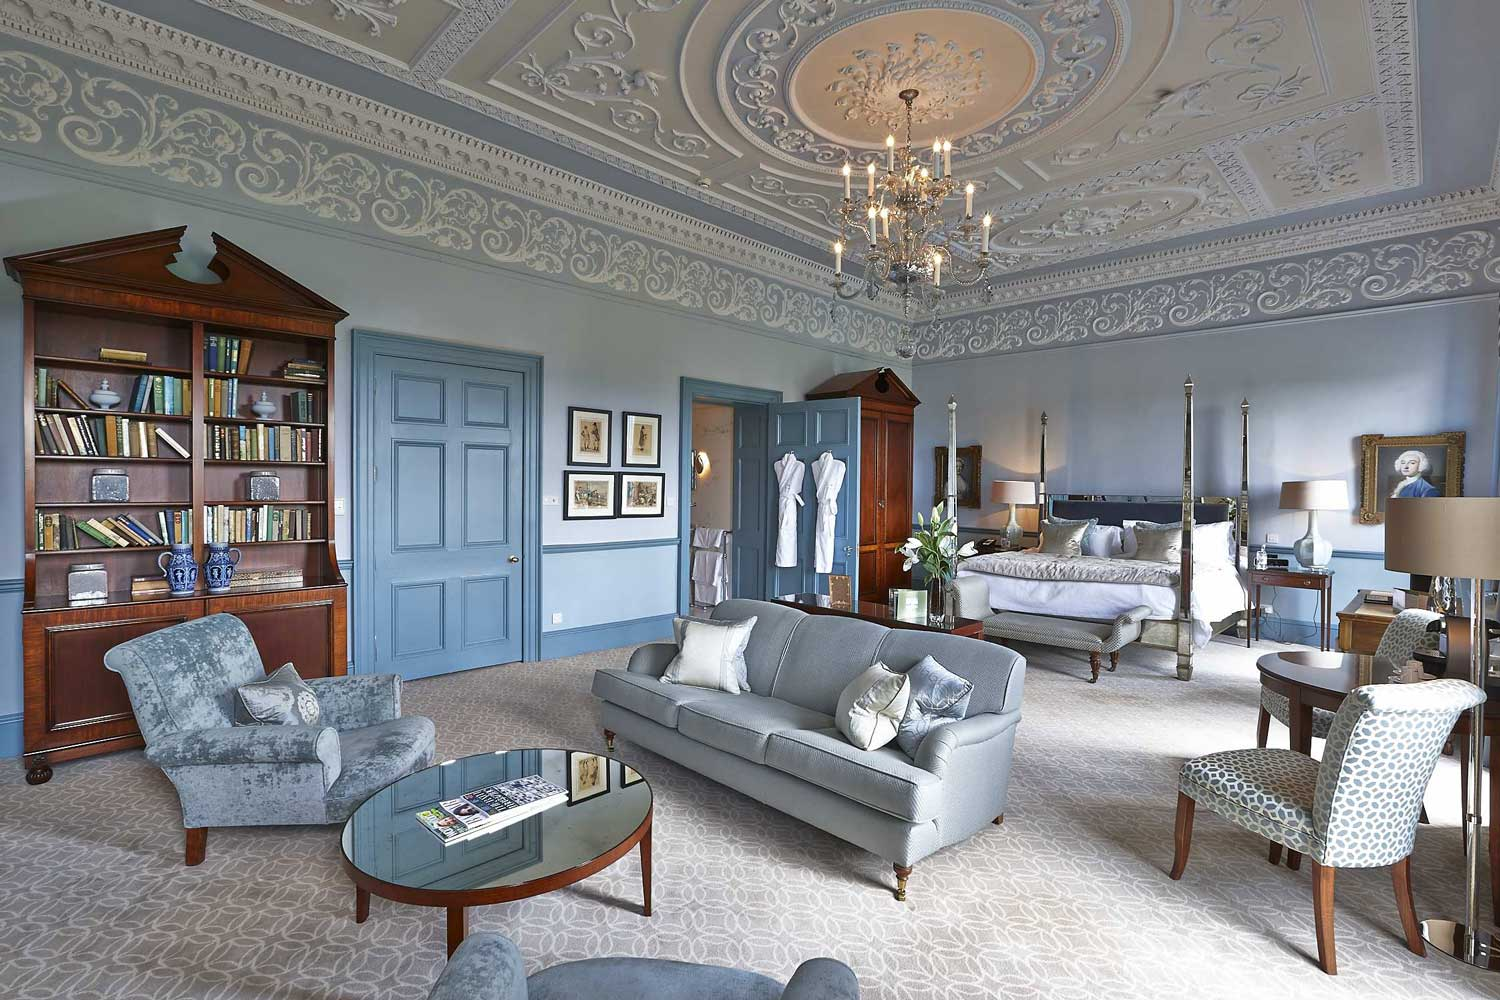 Royal Crescent Hotel, Duke of York Suite | Architectural Photographers